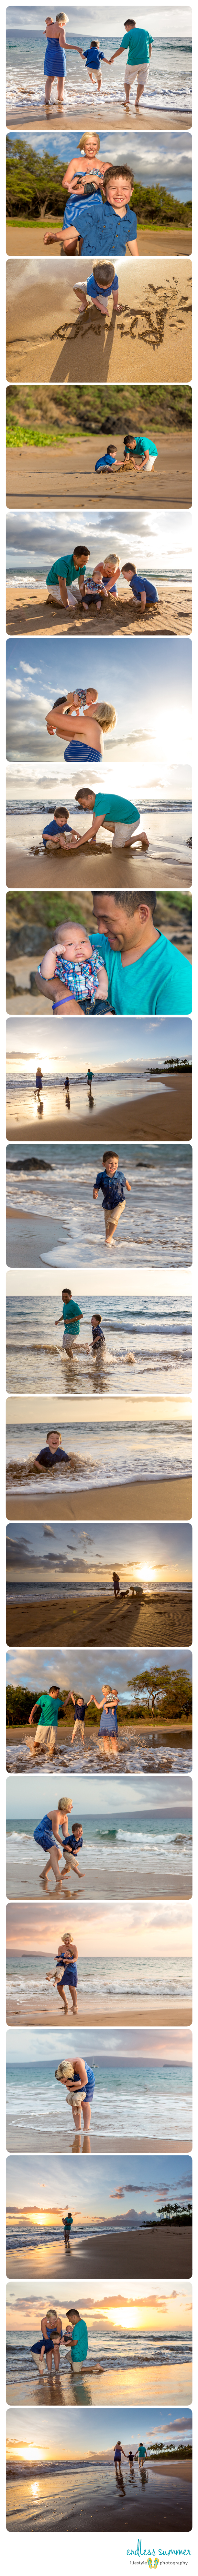 Maui Lifestyle Family Photography